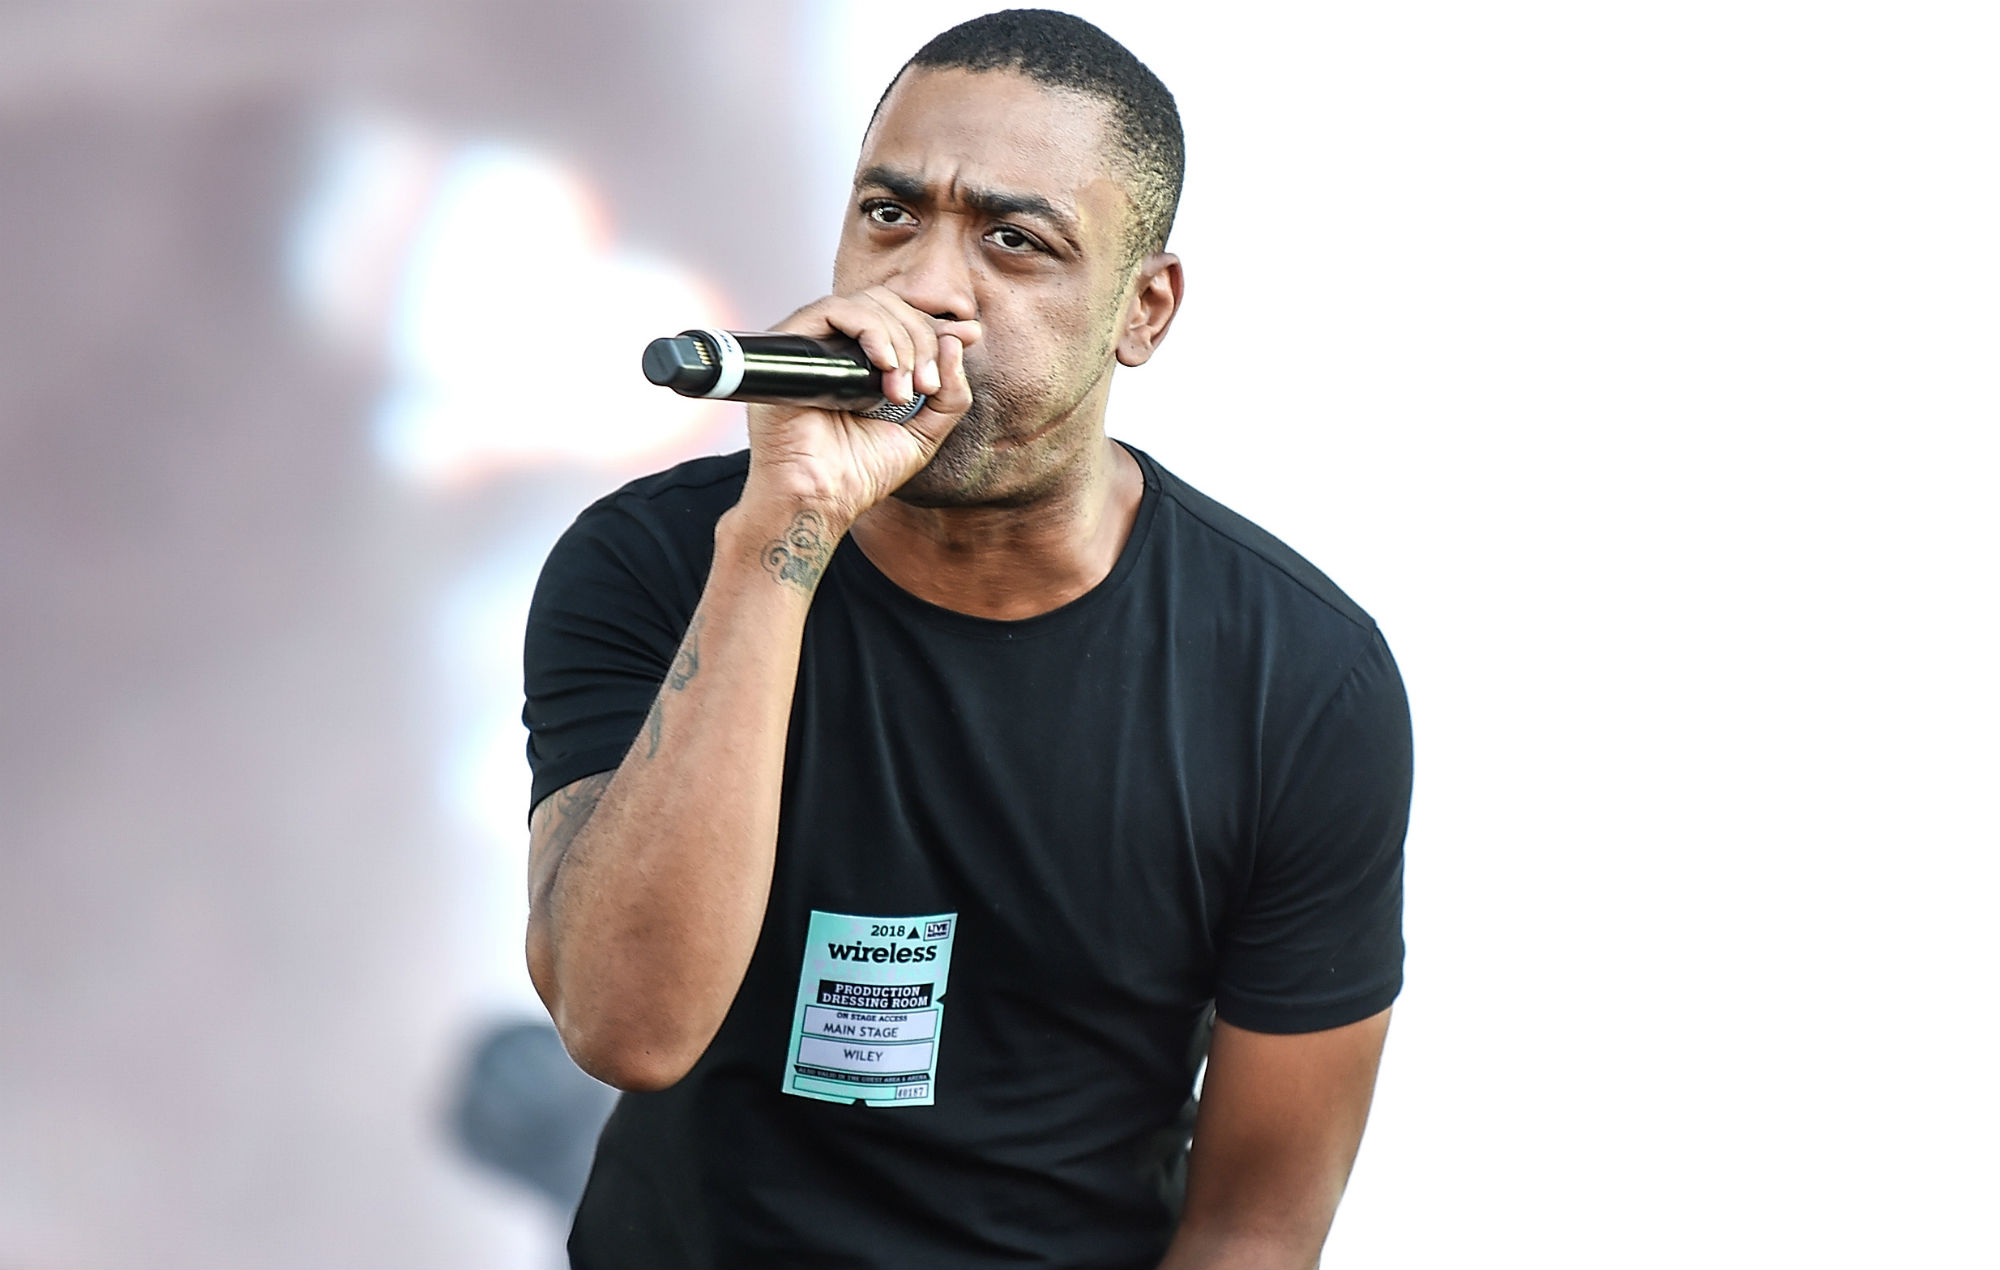 Cabinet Office to review Wiley's MBE after anti-semitic rant